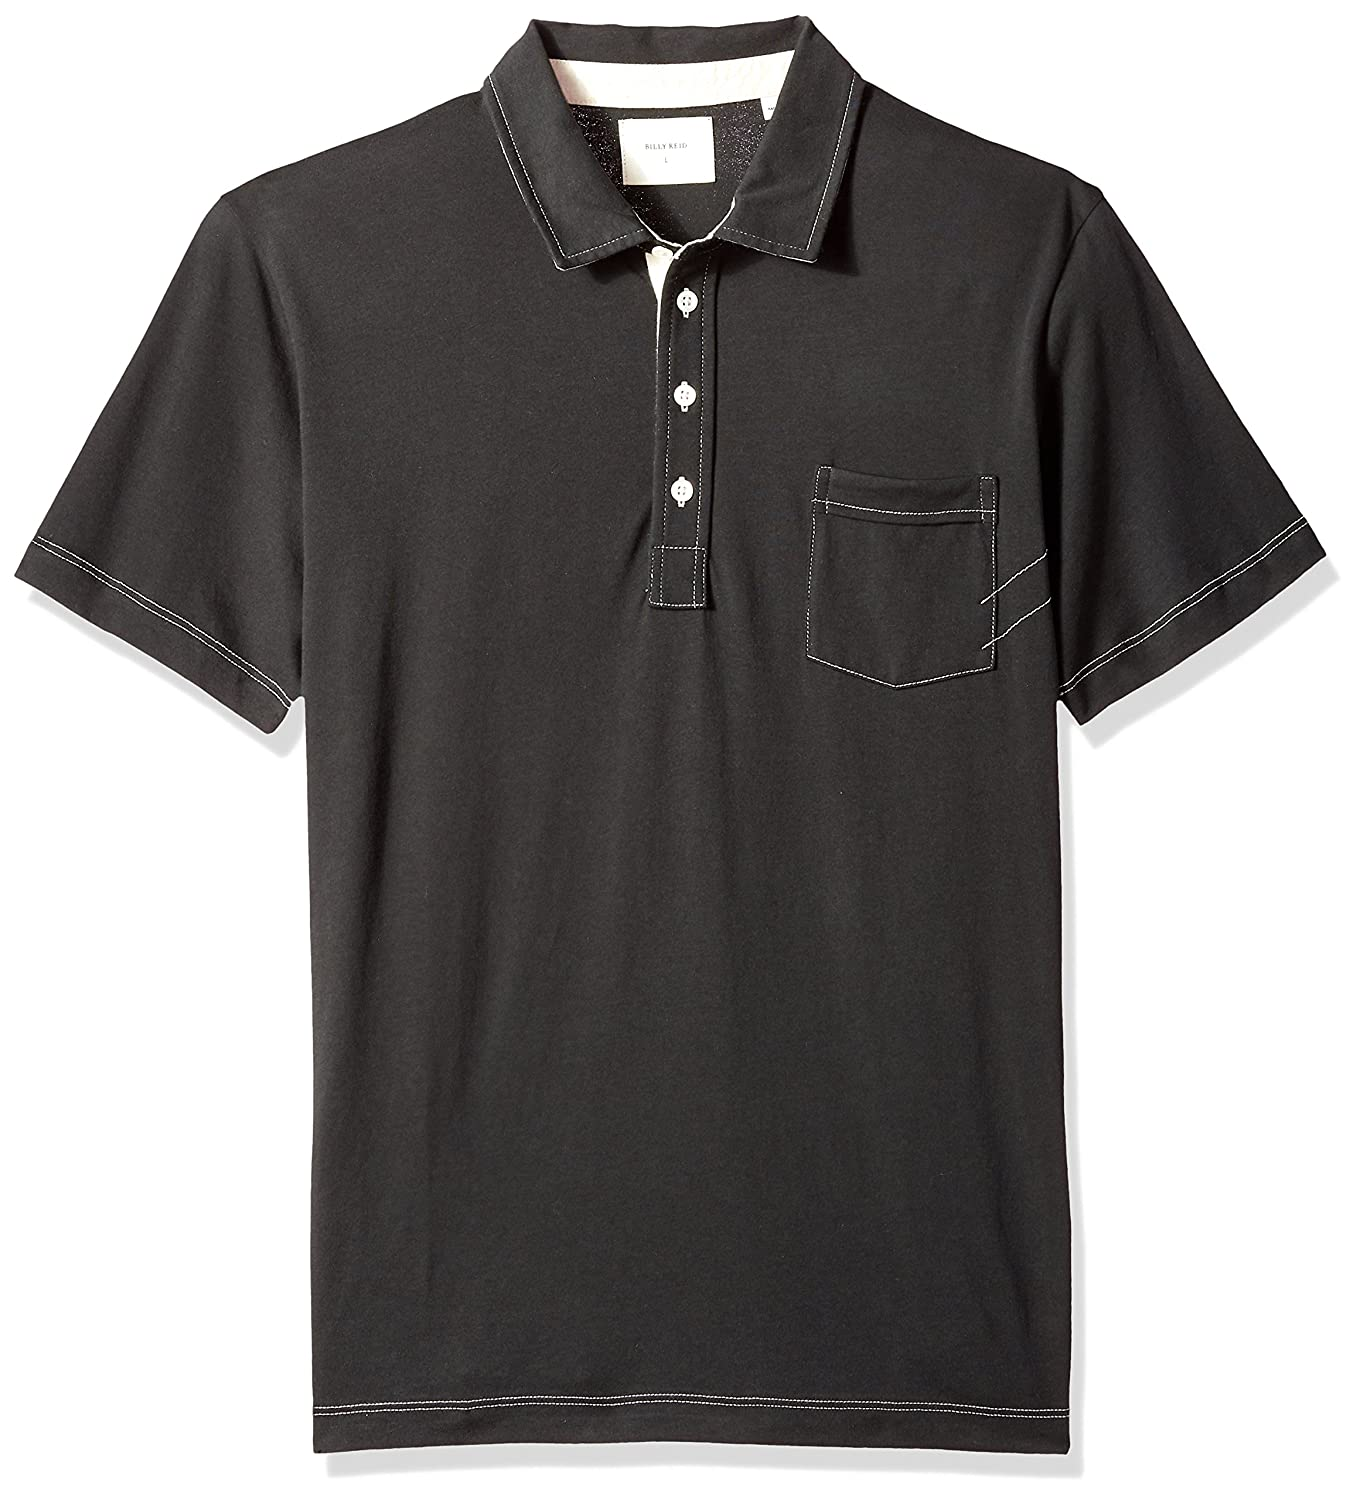 90d55987590 Top1: Billy Reid Men's Short Sleeve Pensacola Polo Shirt with Pocket